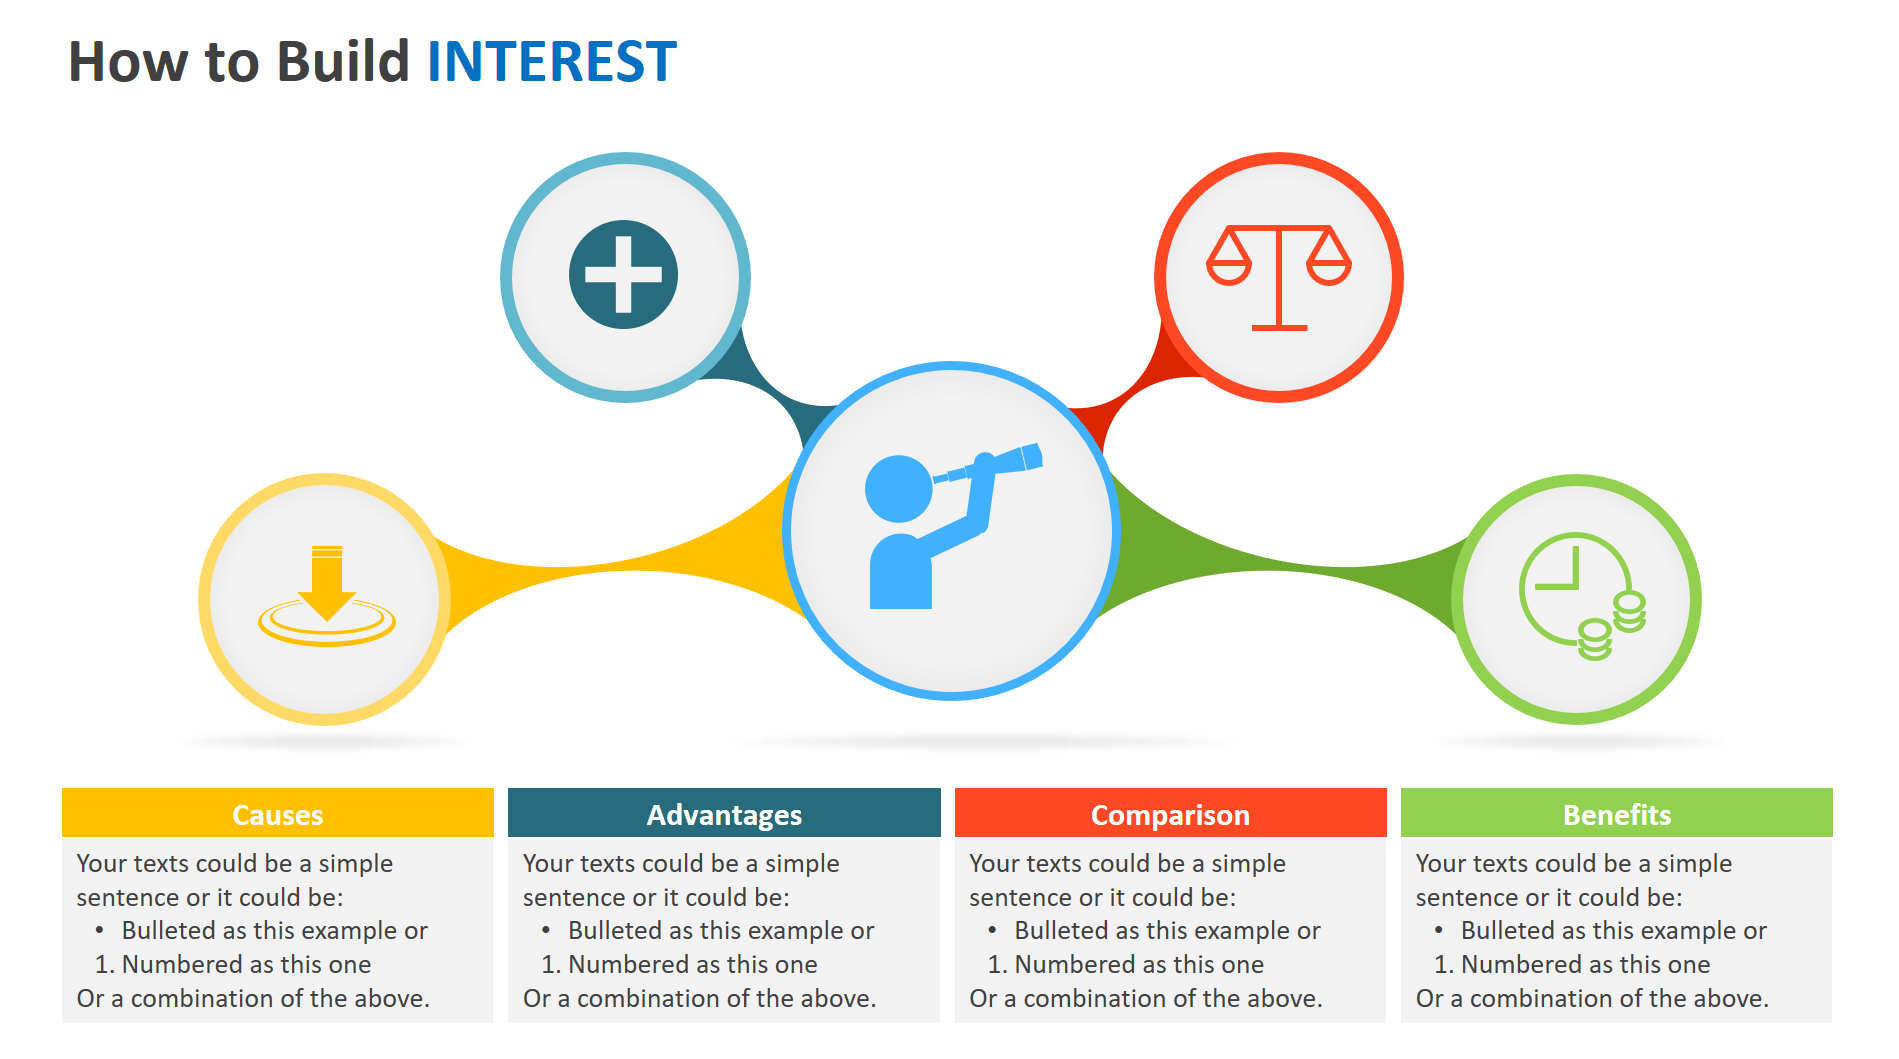 How to build interest